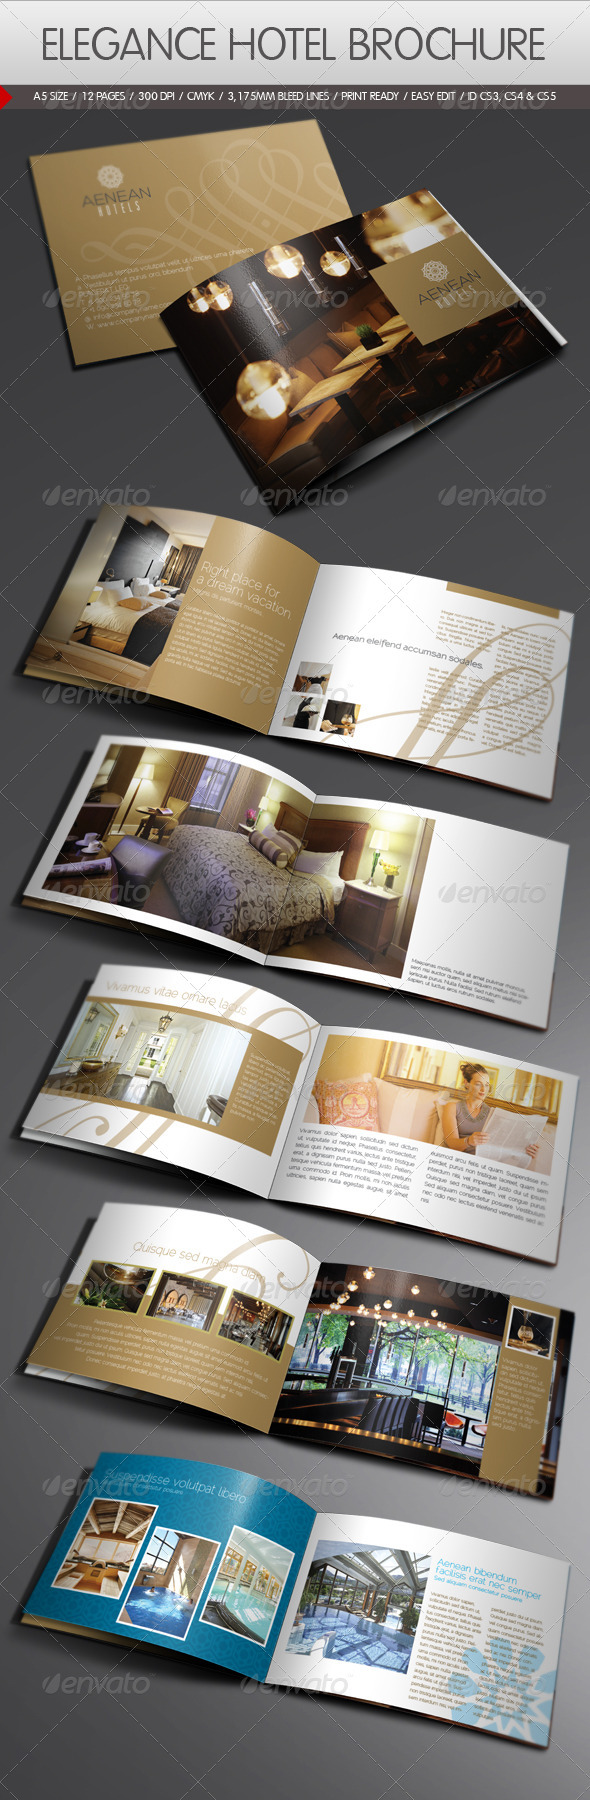 Hotel brochure templates free download for Hotel brochure templates